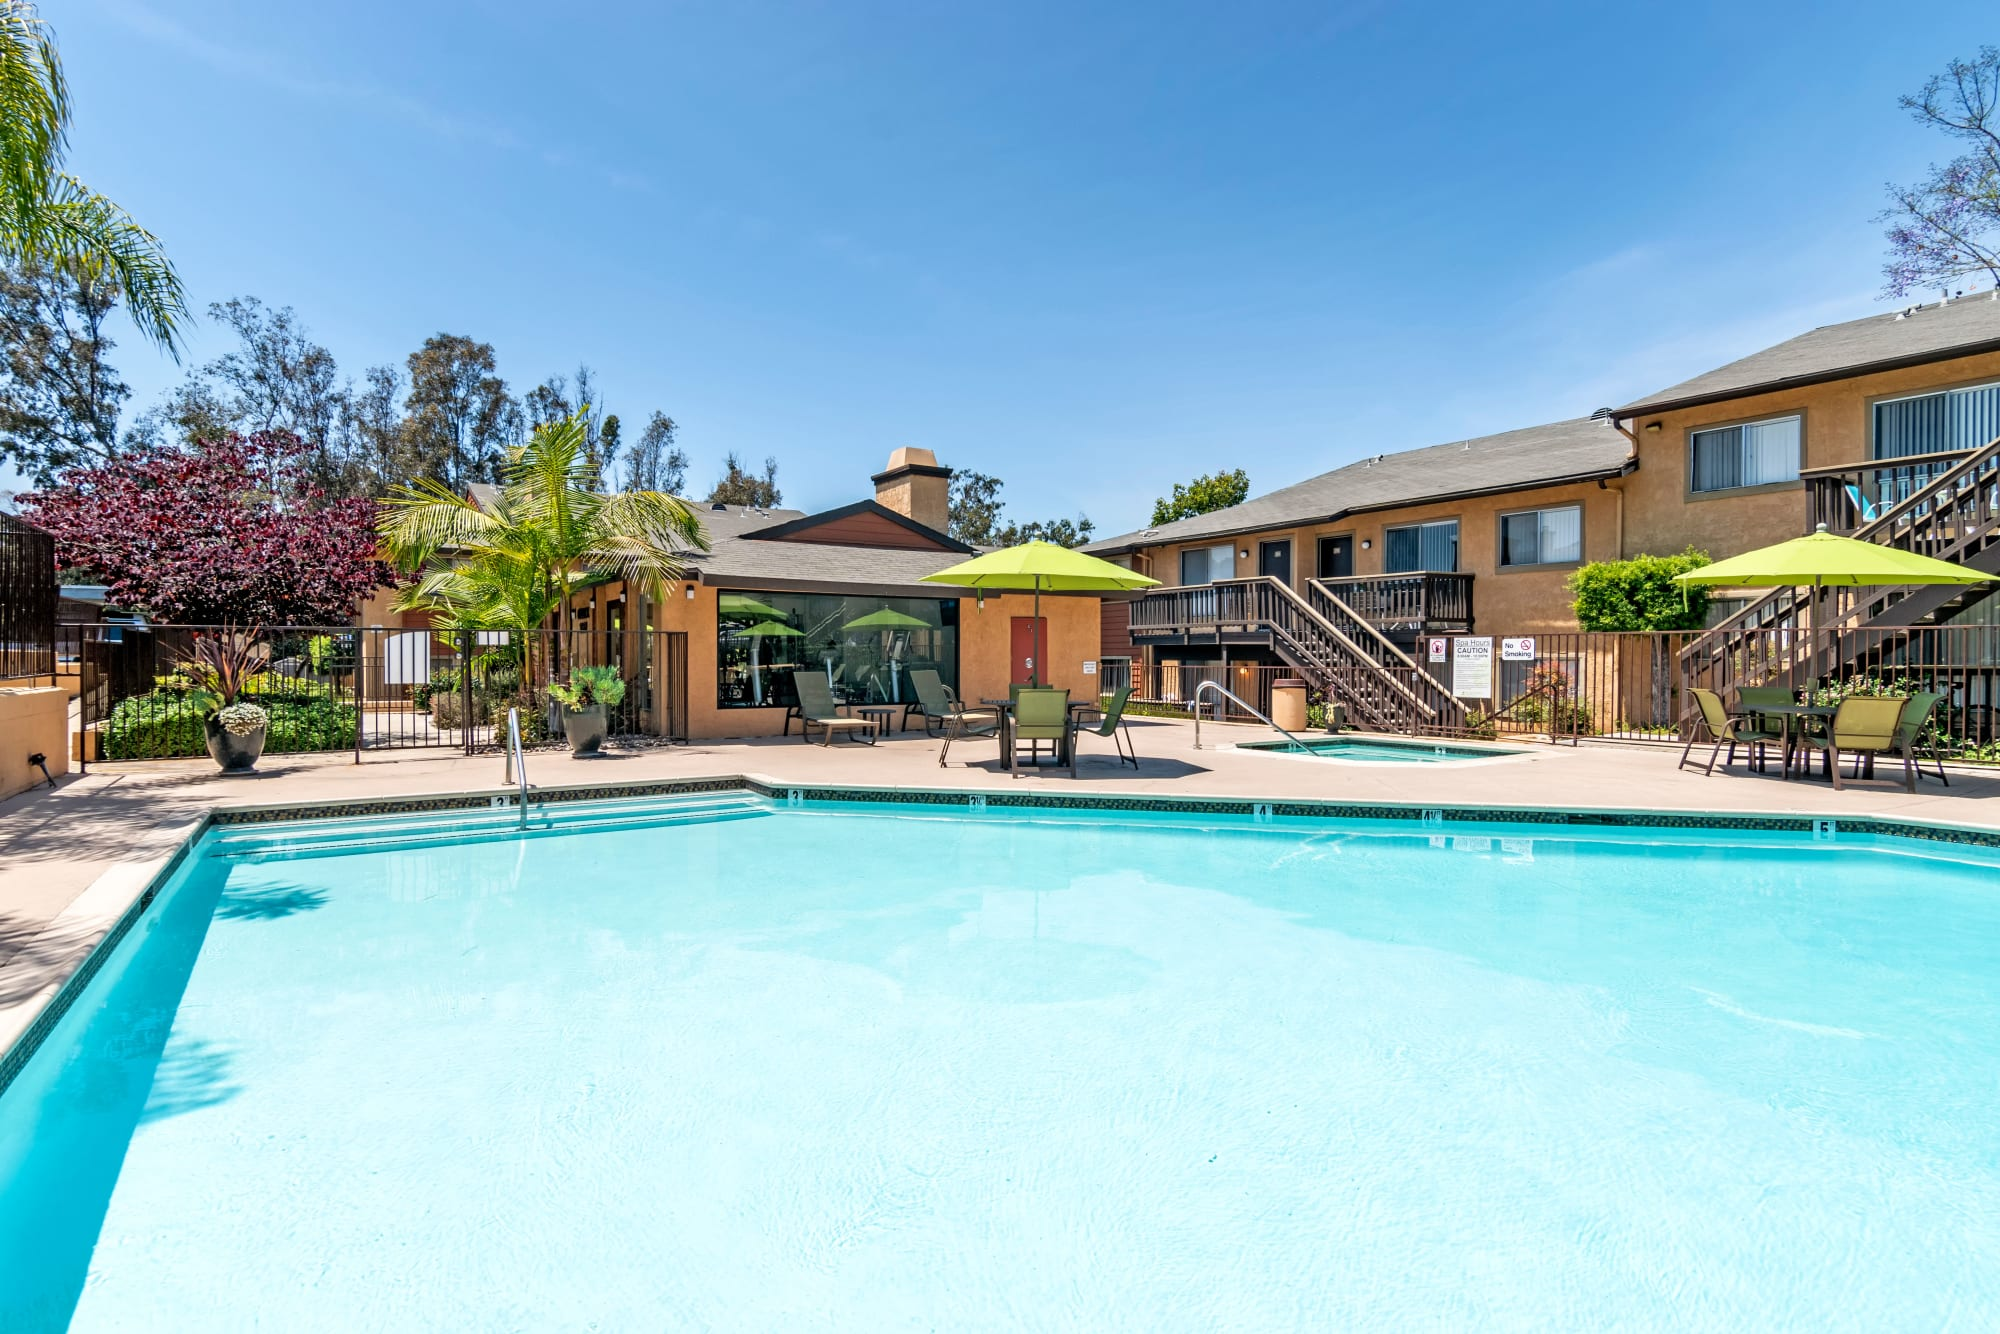 Sparkling Pool At Hillside Terrace Apartments